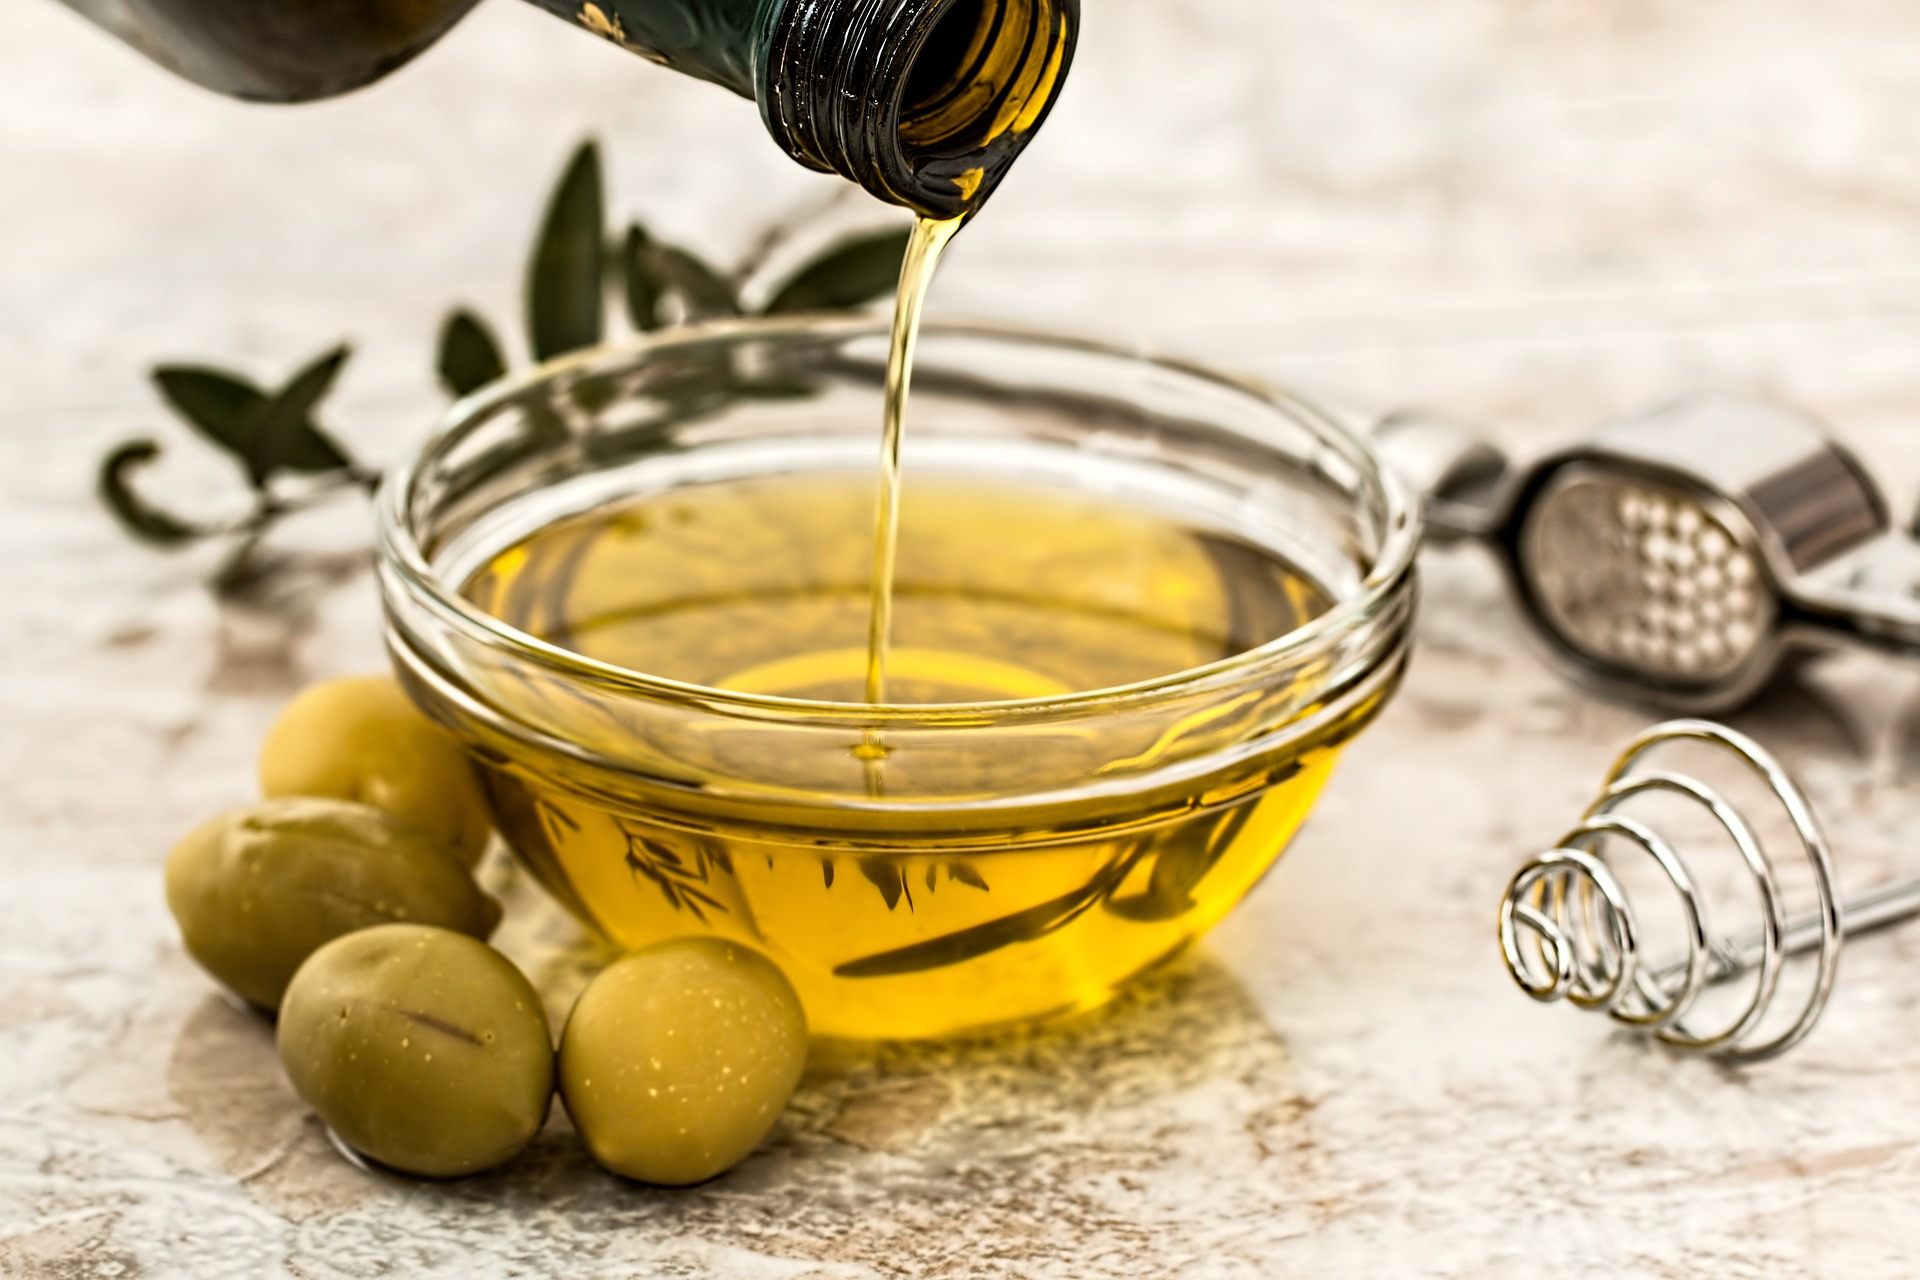 olive oil as healthy food